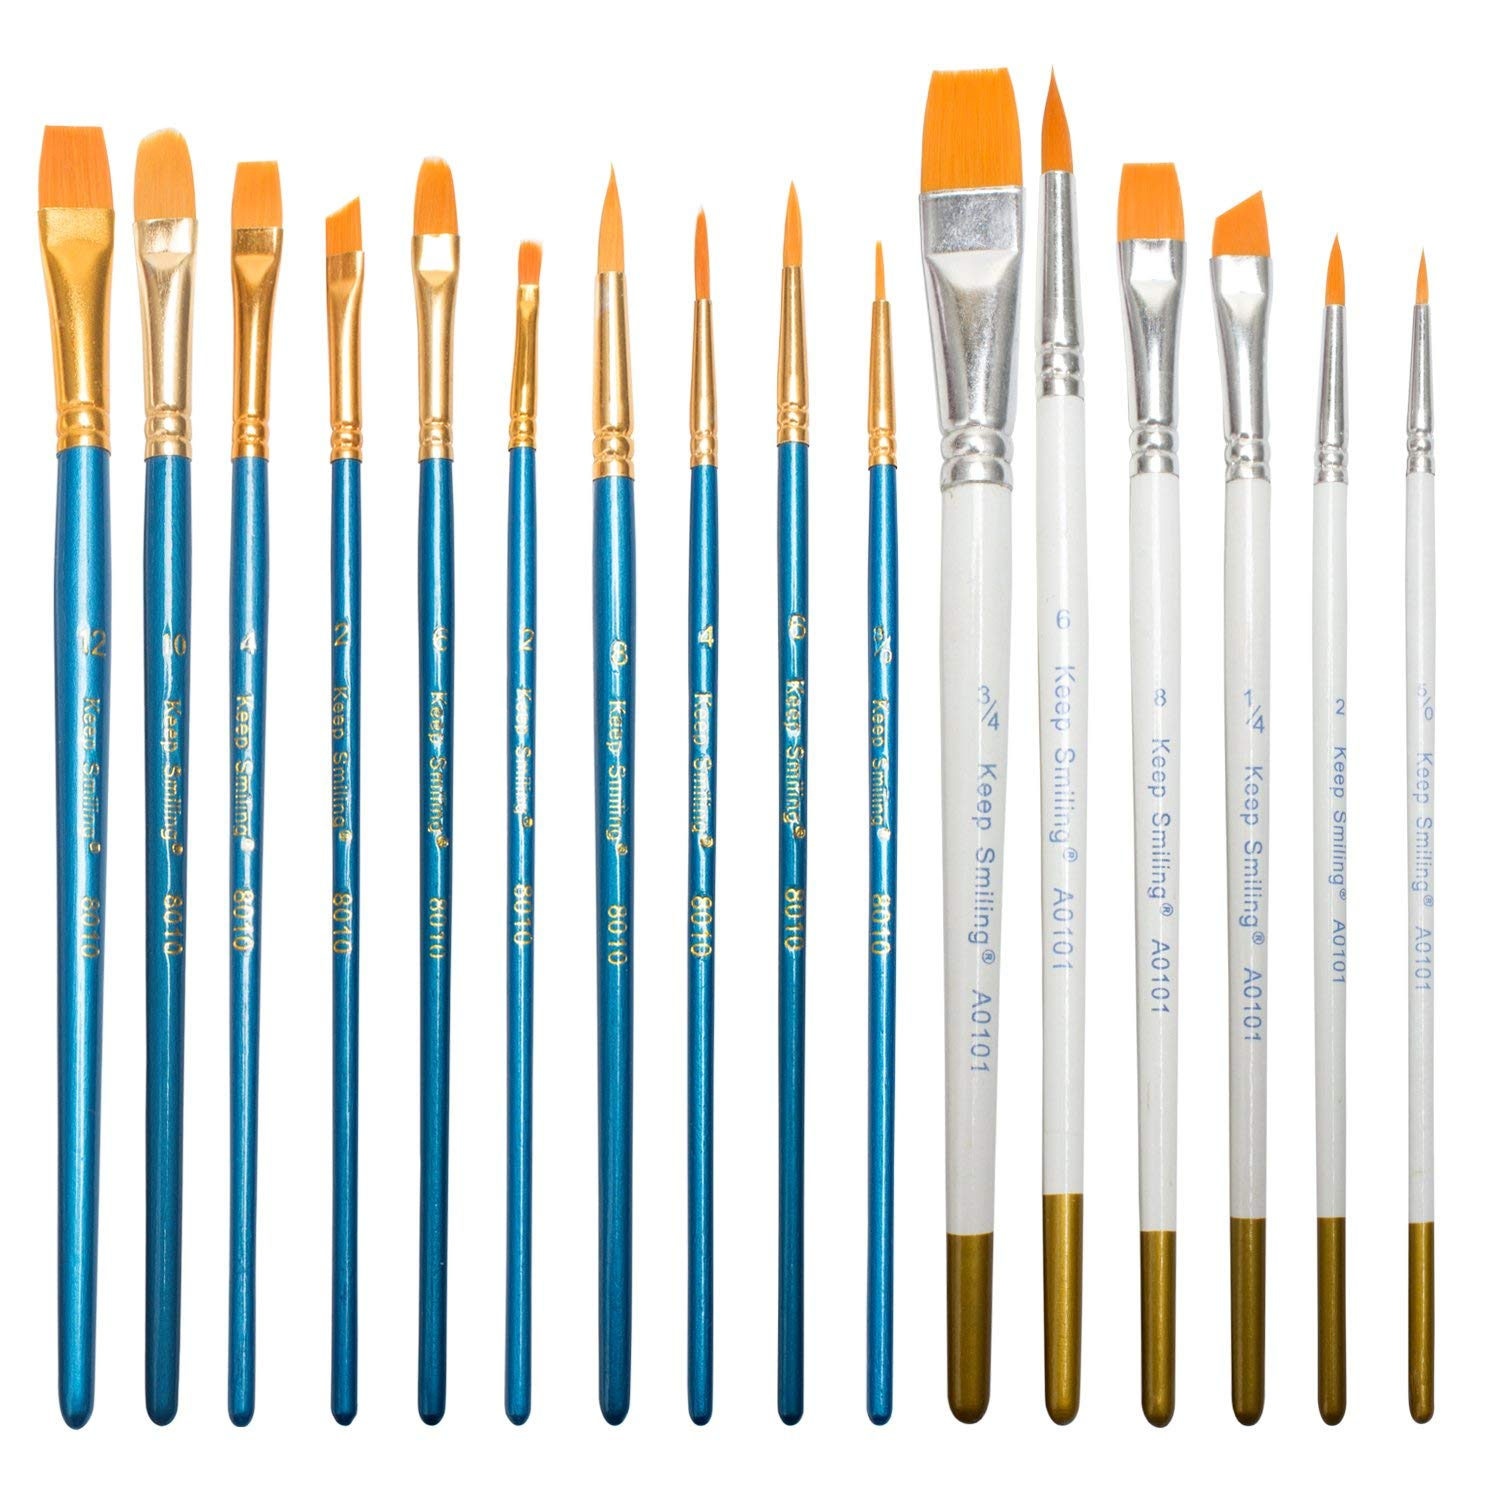 FASOTY 16 Pack Paint Brush Set Acrylic Professional Paint Brushes Artist for Watercolor Oil Acrylic Painting